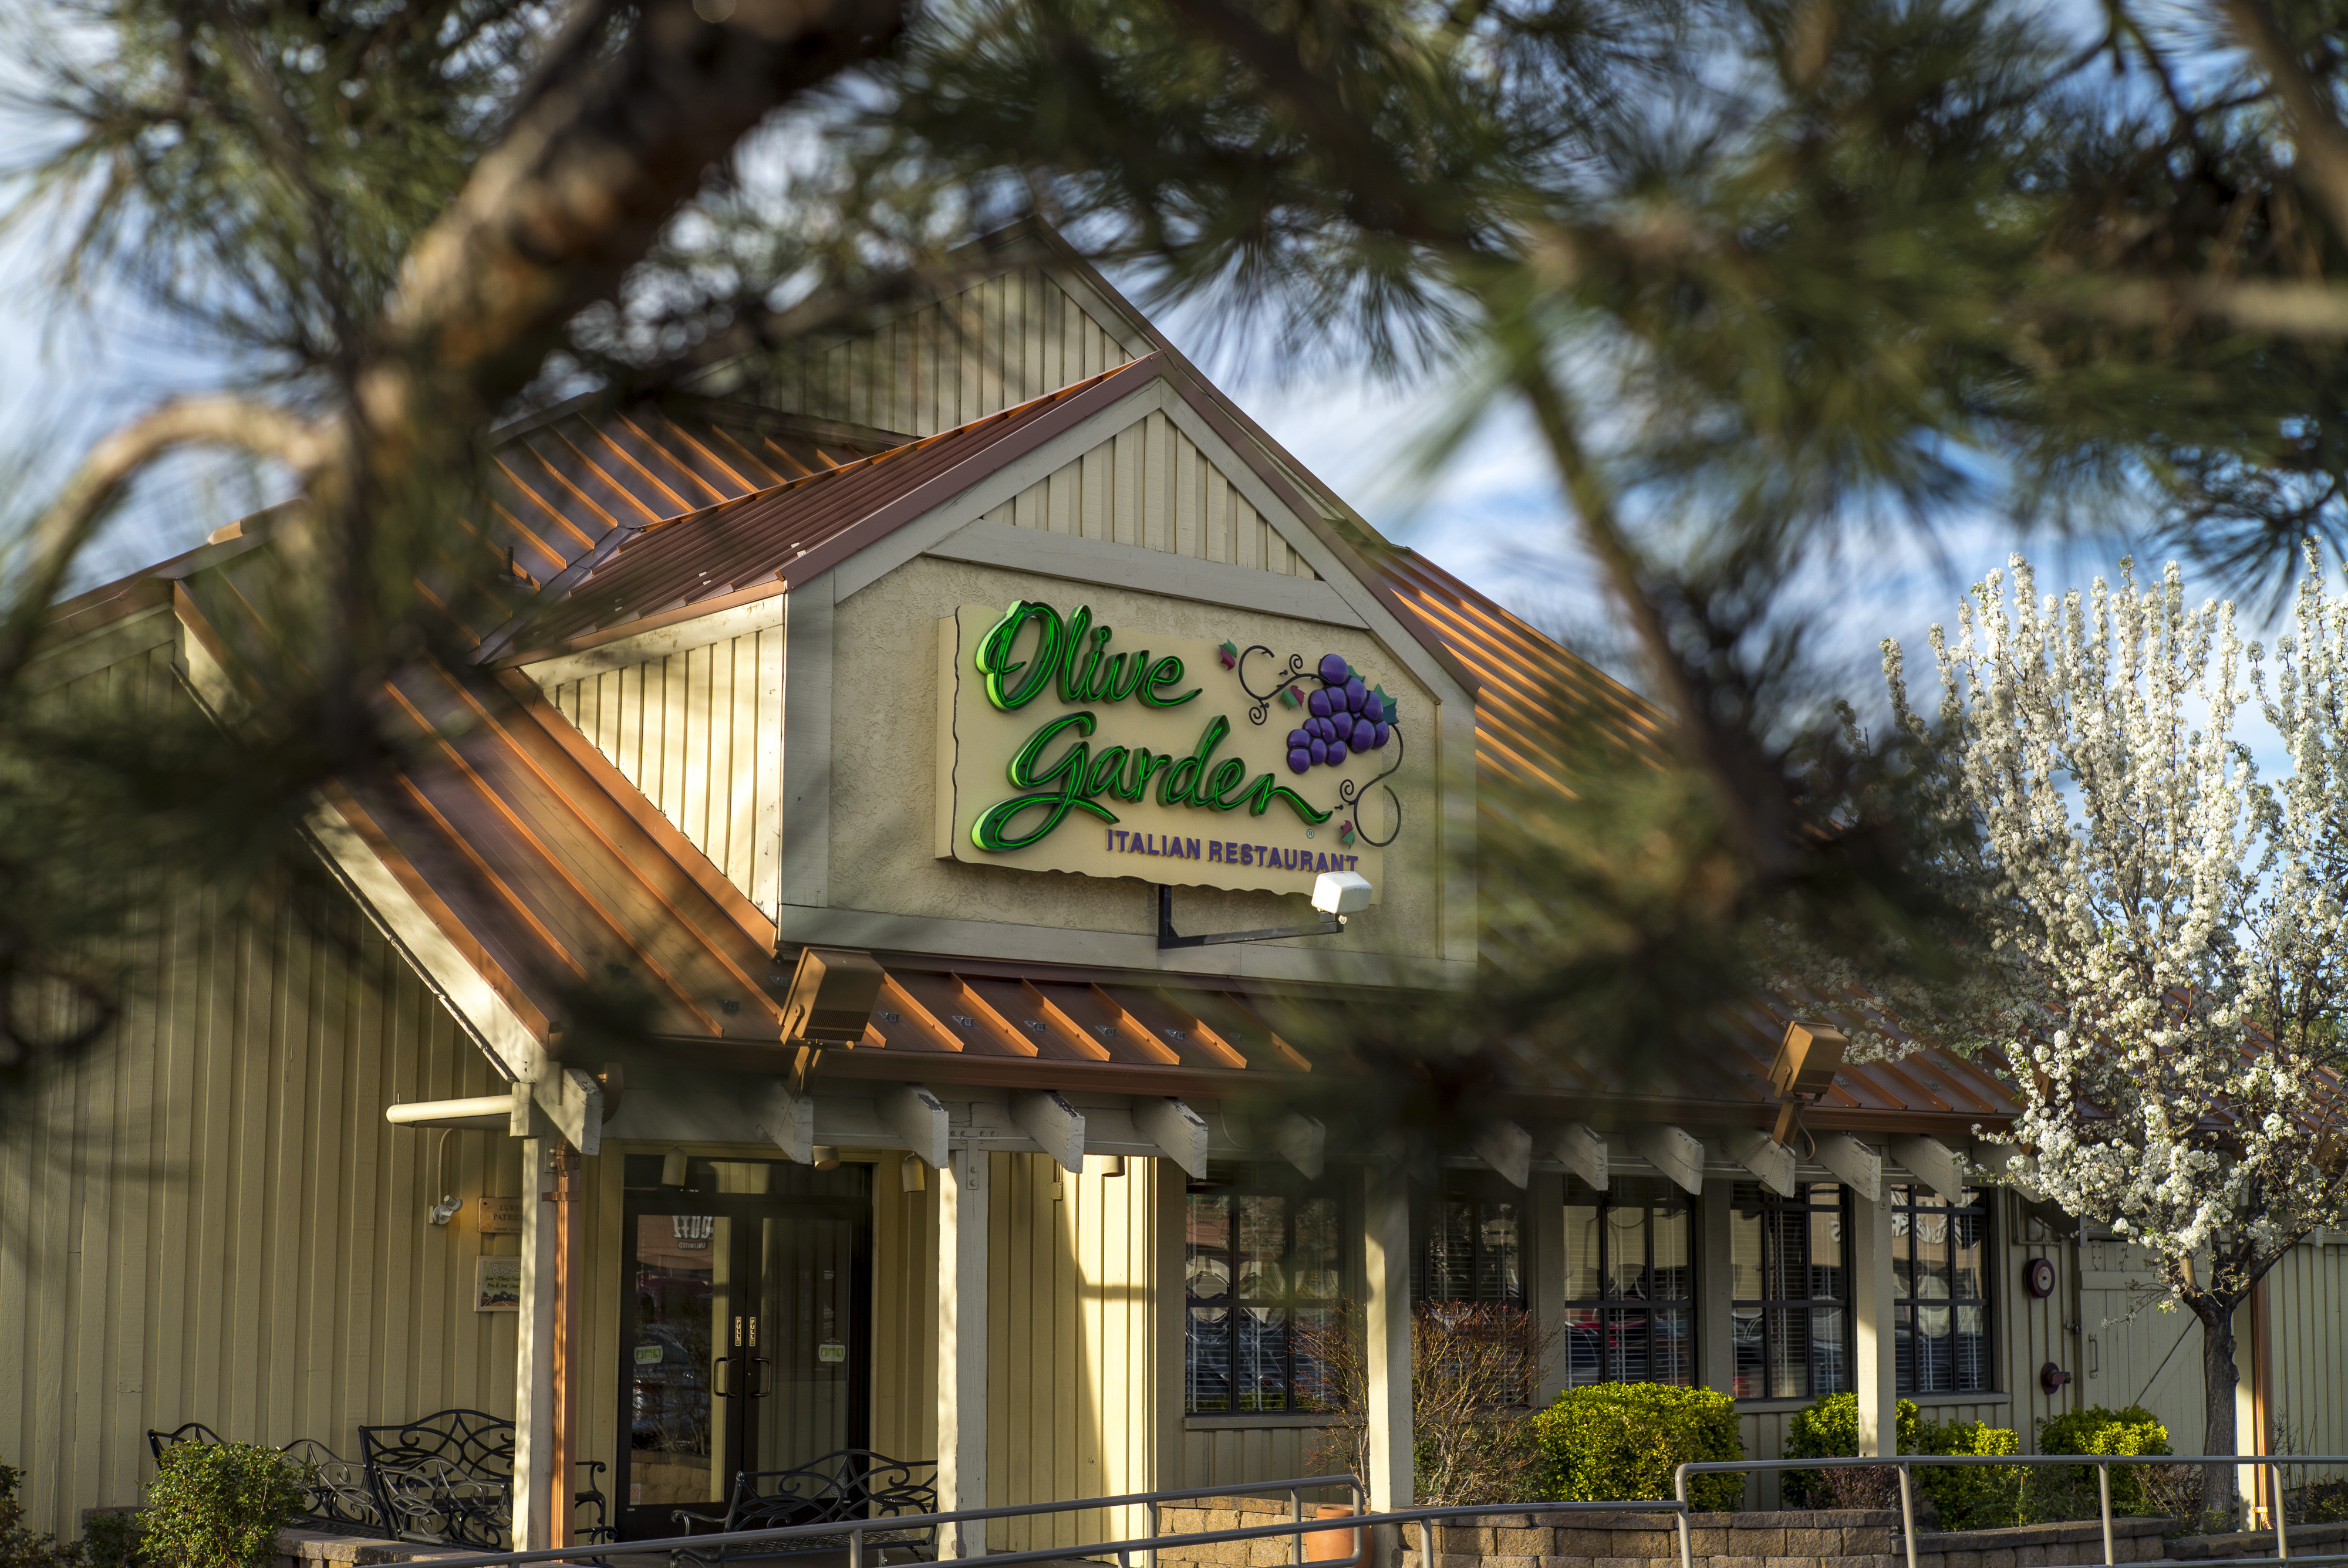 An Olive Garden in Reno, Nevada on March 19, 2015.